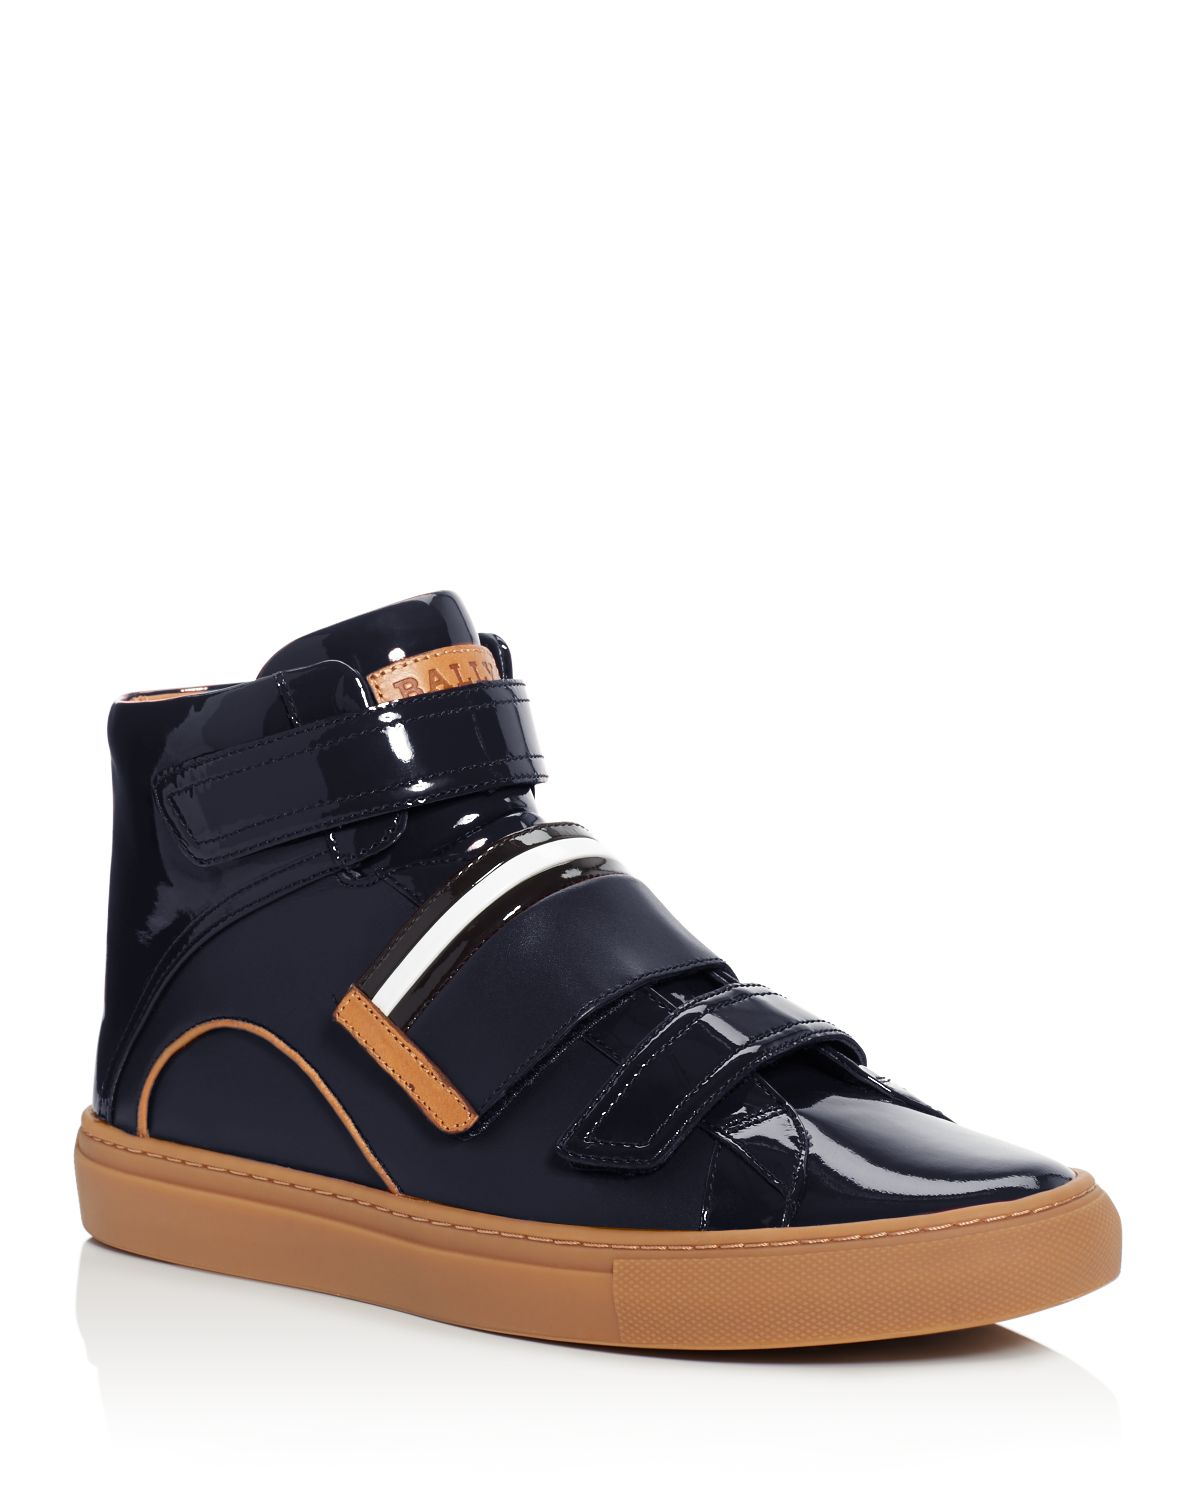 BallyMen's Herick Leather High Top Sneakers